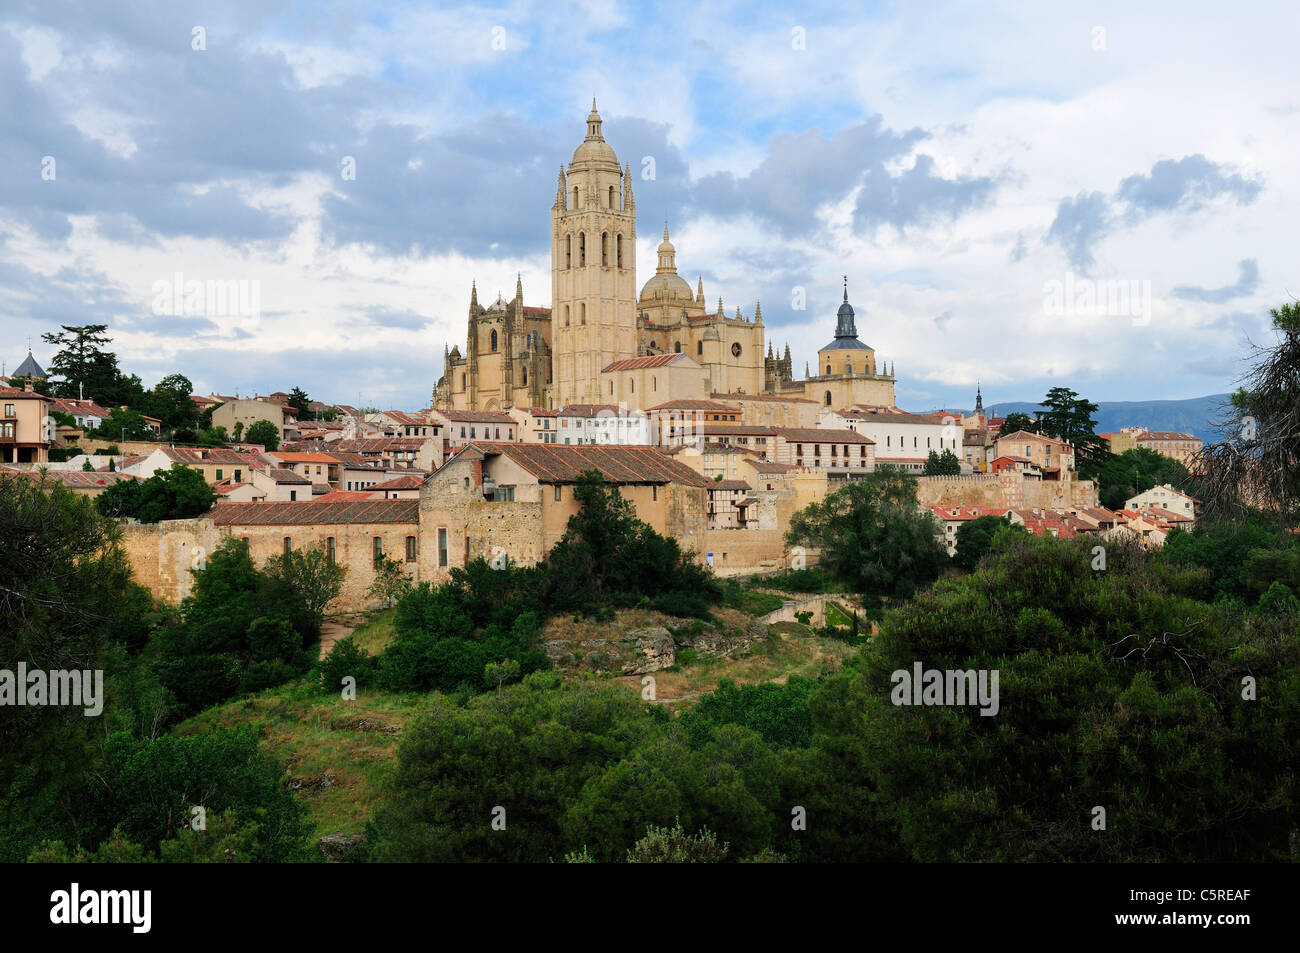 Europe, Spain, Castile and Leon, Segovia, View of city with cathedral - Stock Image